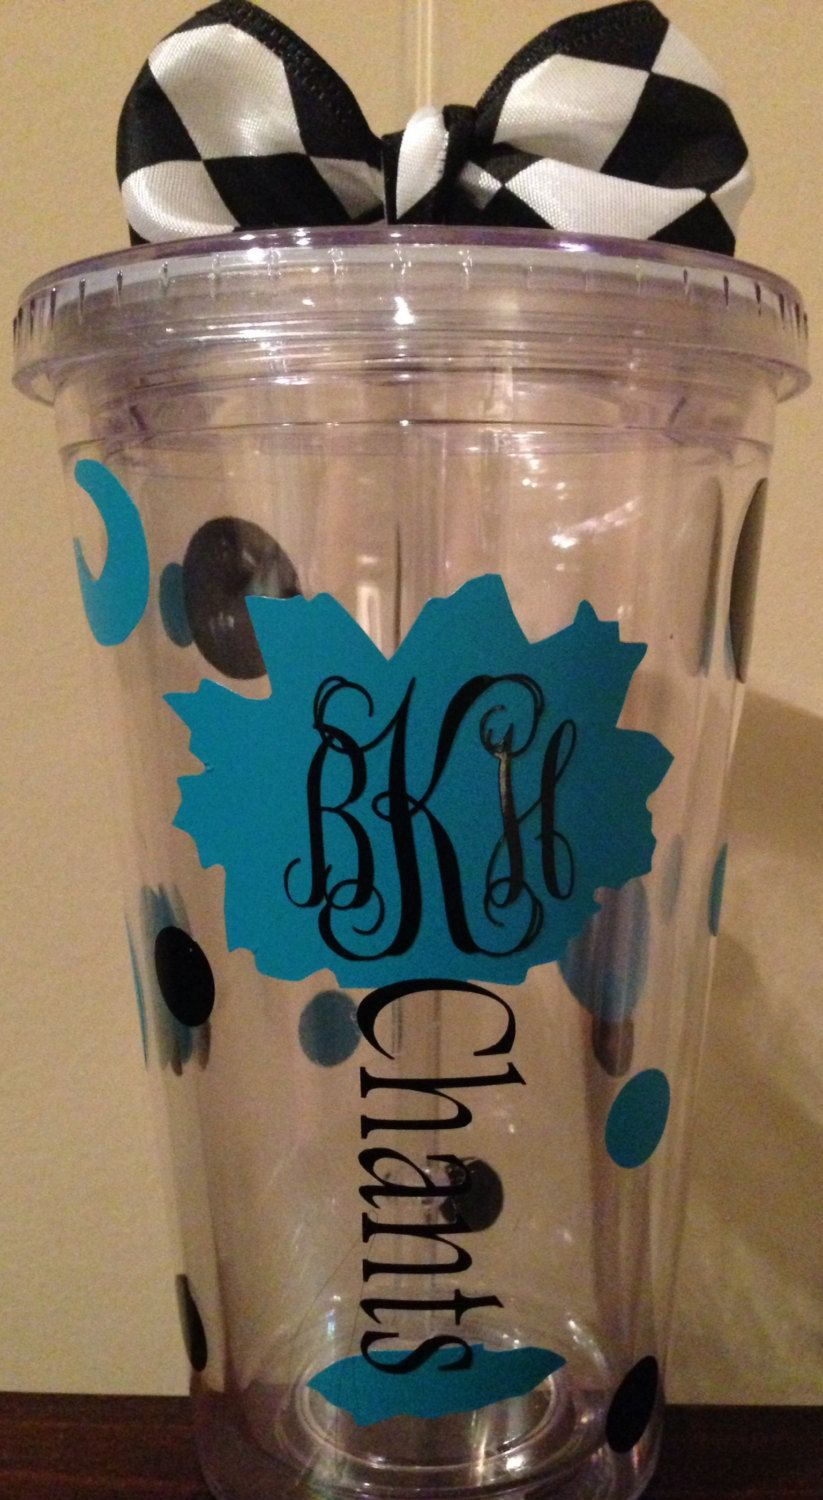 Coastal Carolina University Monogrammed Tree and Crescent Moon by 5thRowSouth on Etsy https://www.etsy.com/listing/210084958/coastal-carolina-university-monogrammed